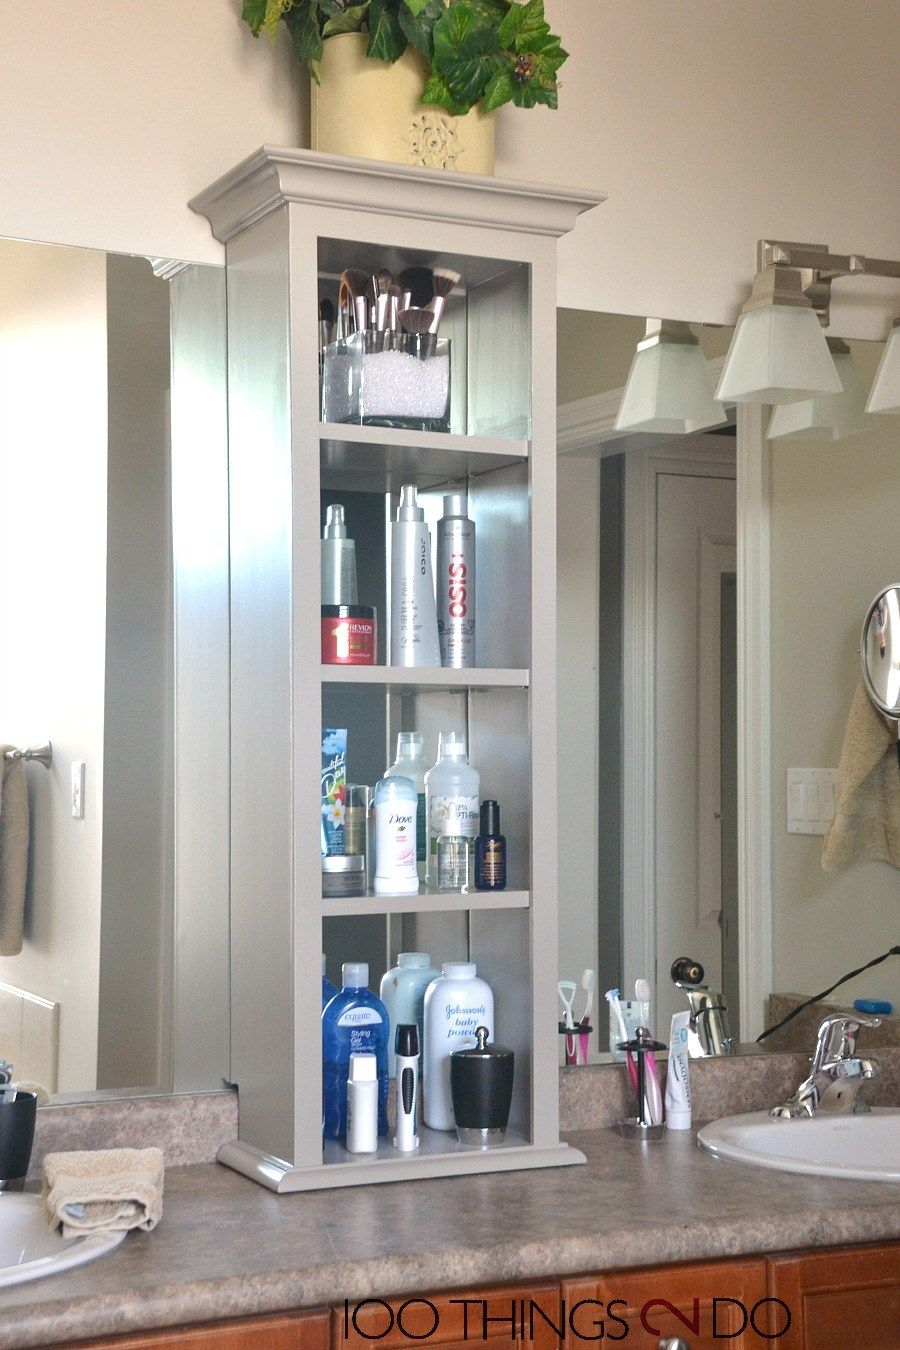 Bathroom vanity towers - Bathroom Storage Tower Bathroom Tower Vanity Tower Cabinet On Bathroom Vanity Vanity